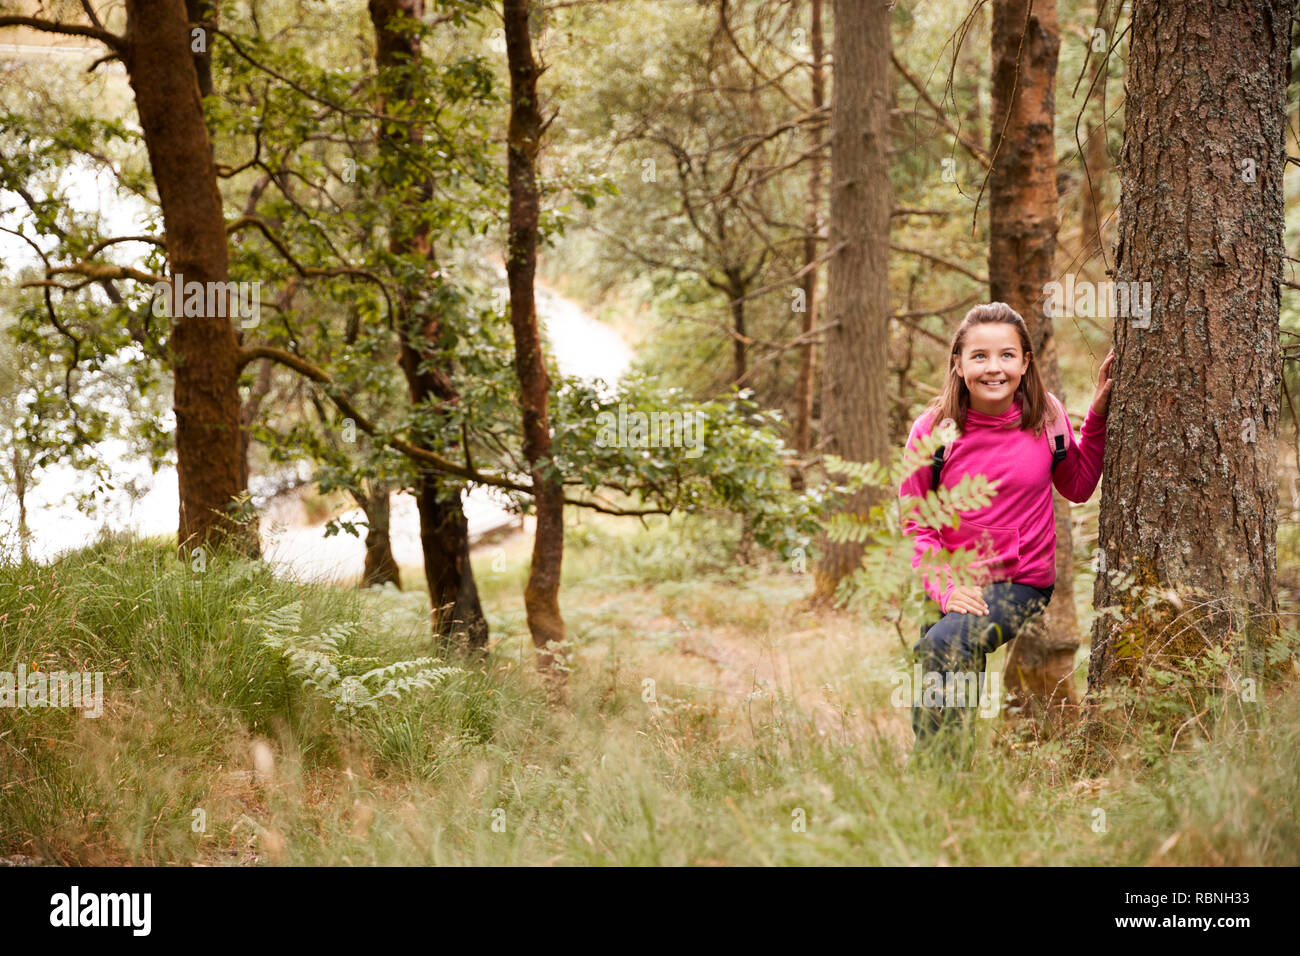 Pre-teen girl stands leaning against a tree in a forest, seen through tall grass - Stock Image